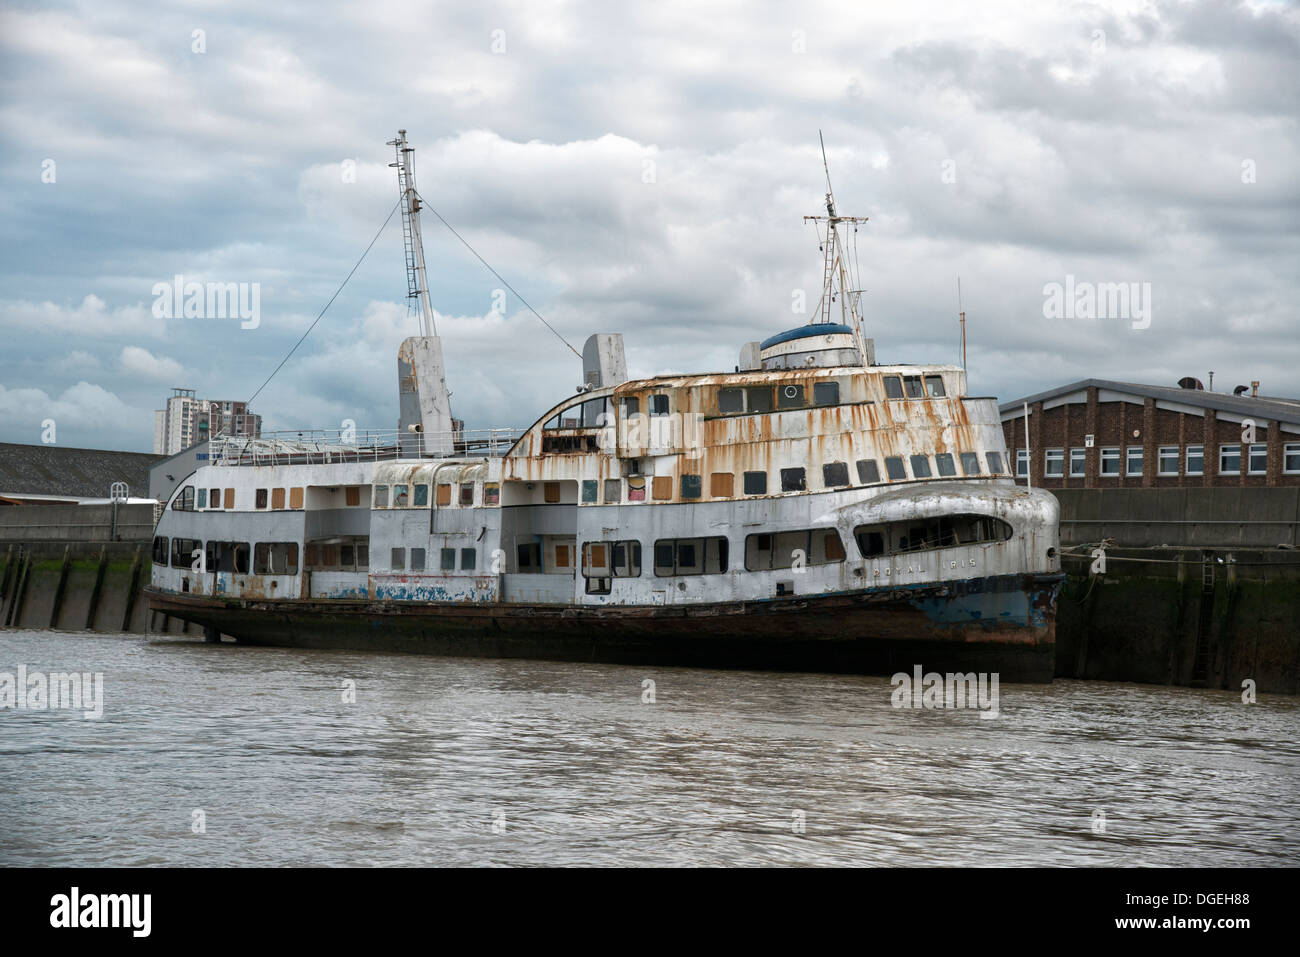 The rusting hulk of the old Mersey Ferry The Royal Iris tied up on the banks of the River Thames in Woolwich, East London. - Stock Image